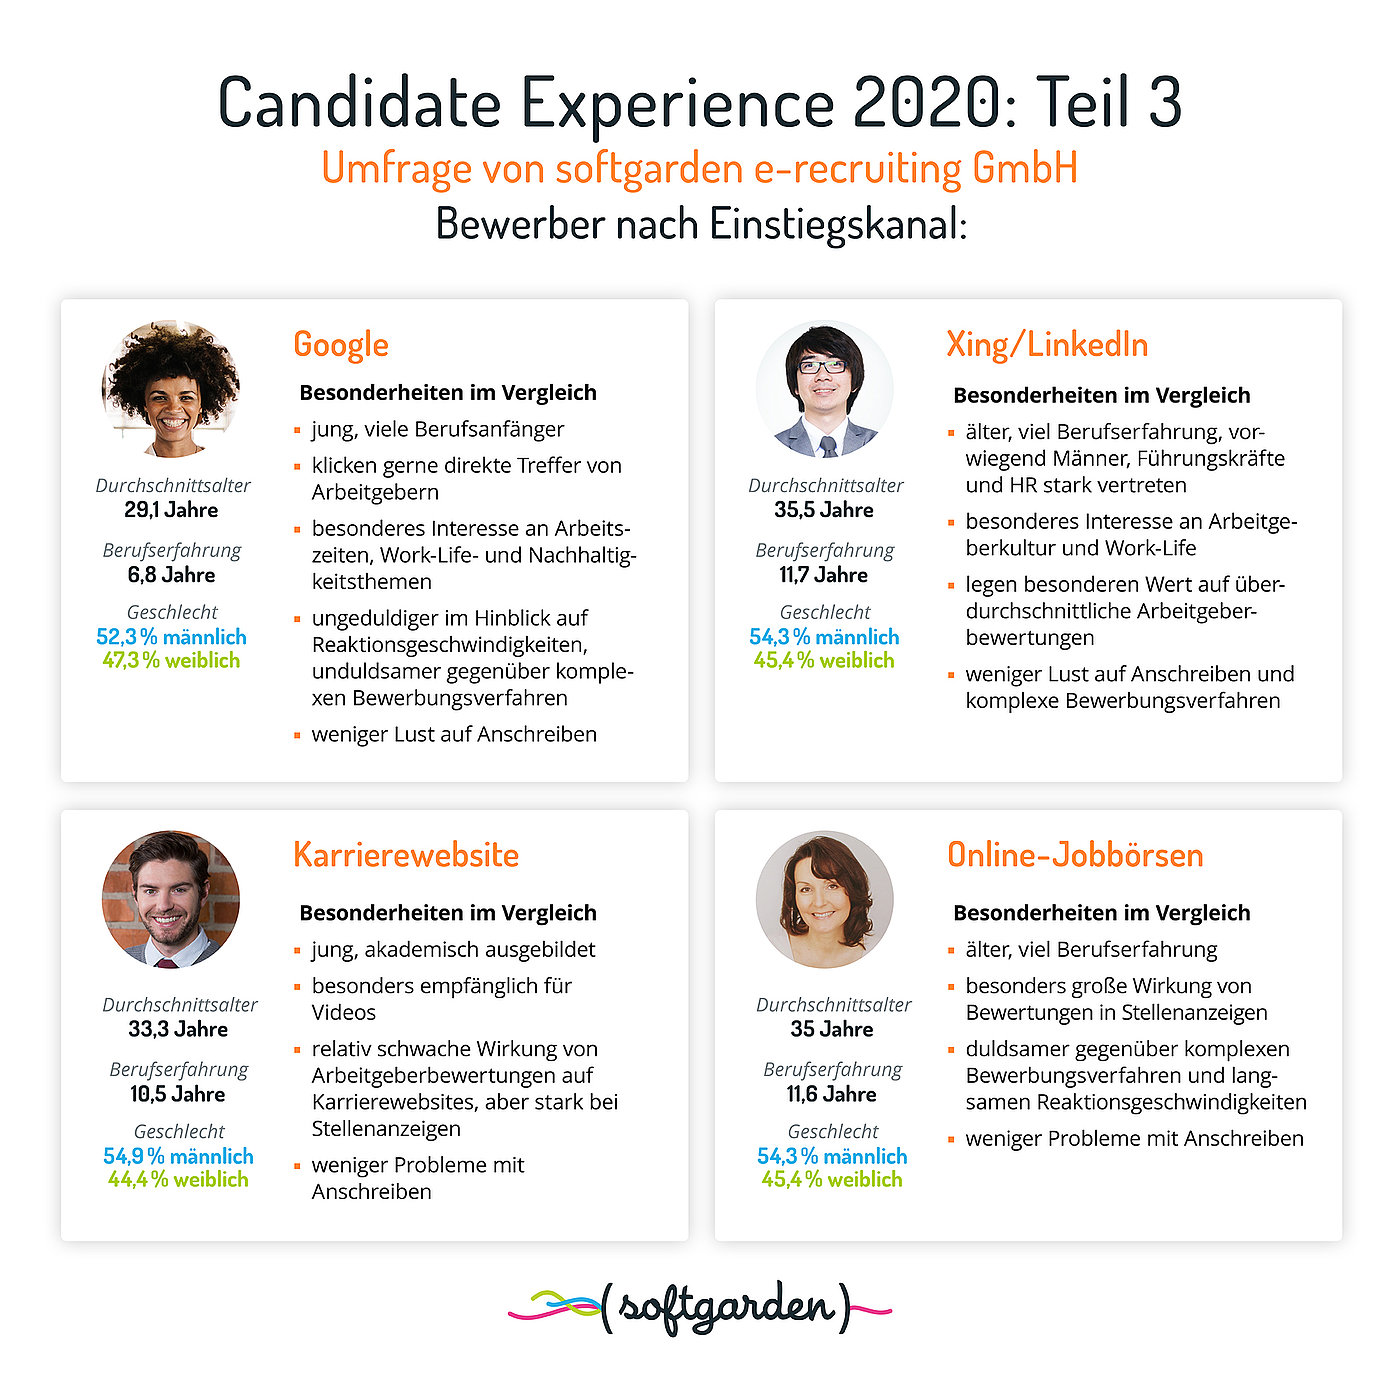 softgarden Candidate Experience 2020 Umfrage